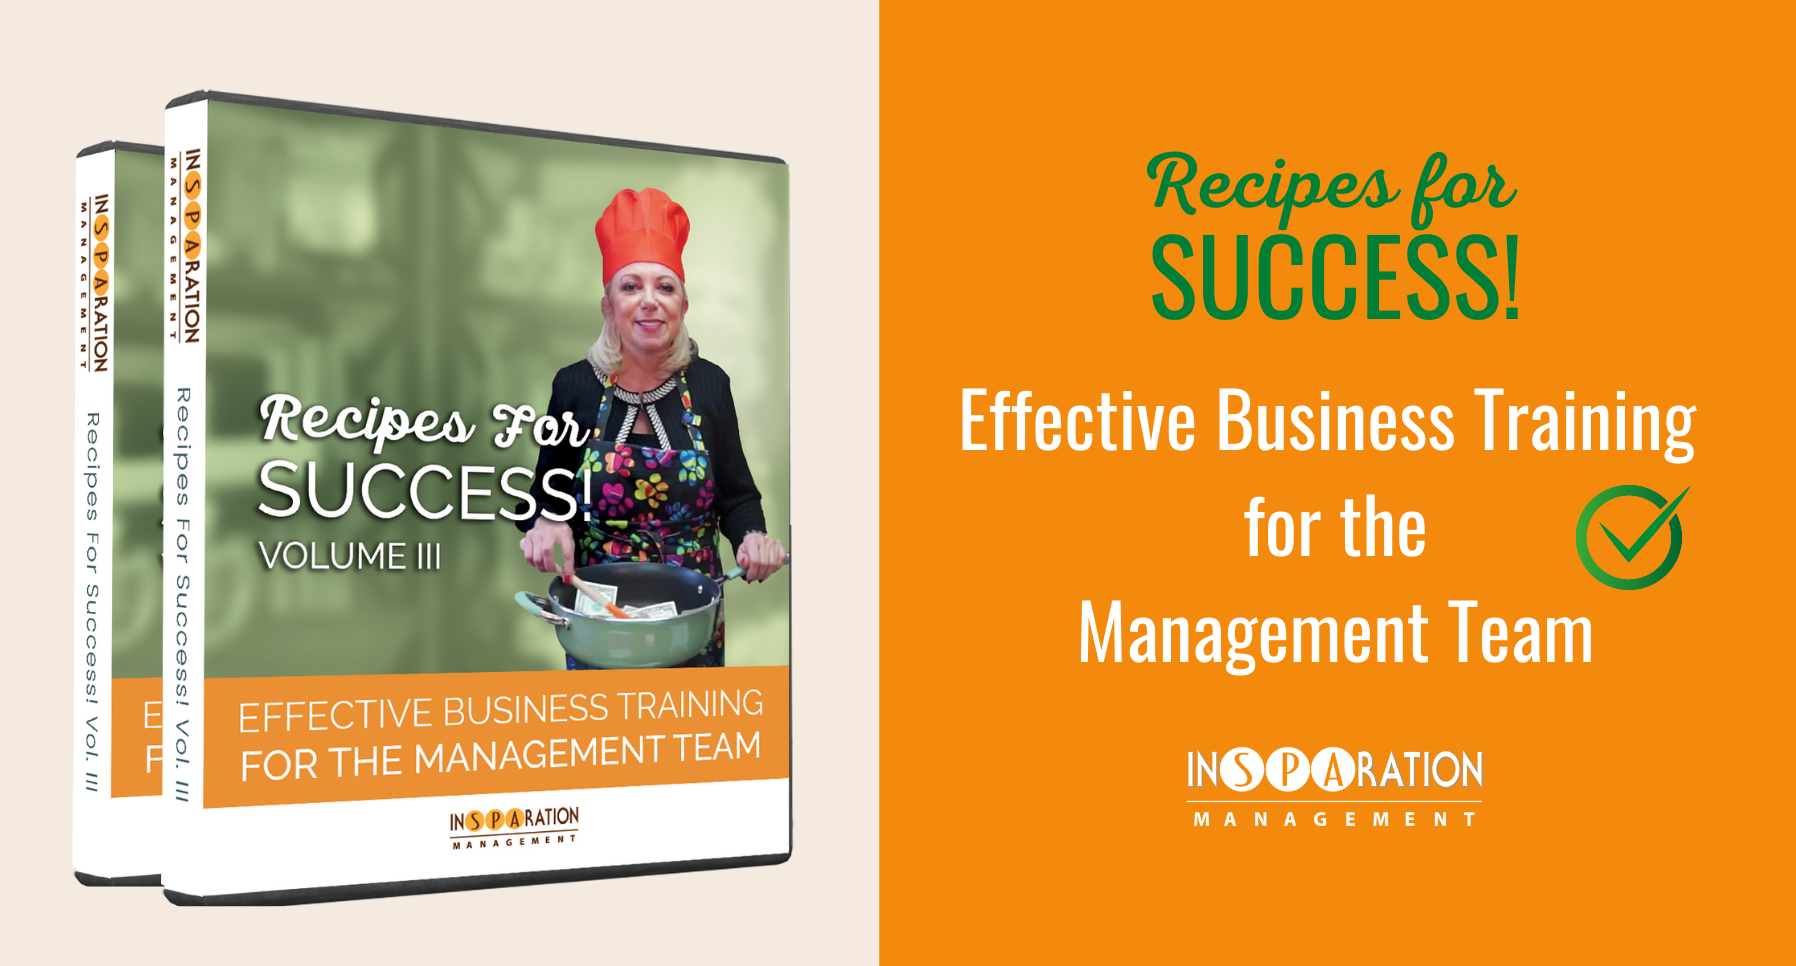 Recipes-For-Success-Effective-Business-Training-for-the-Management-team